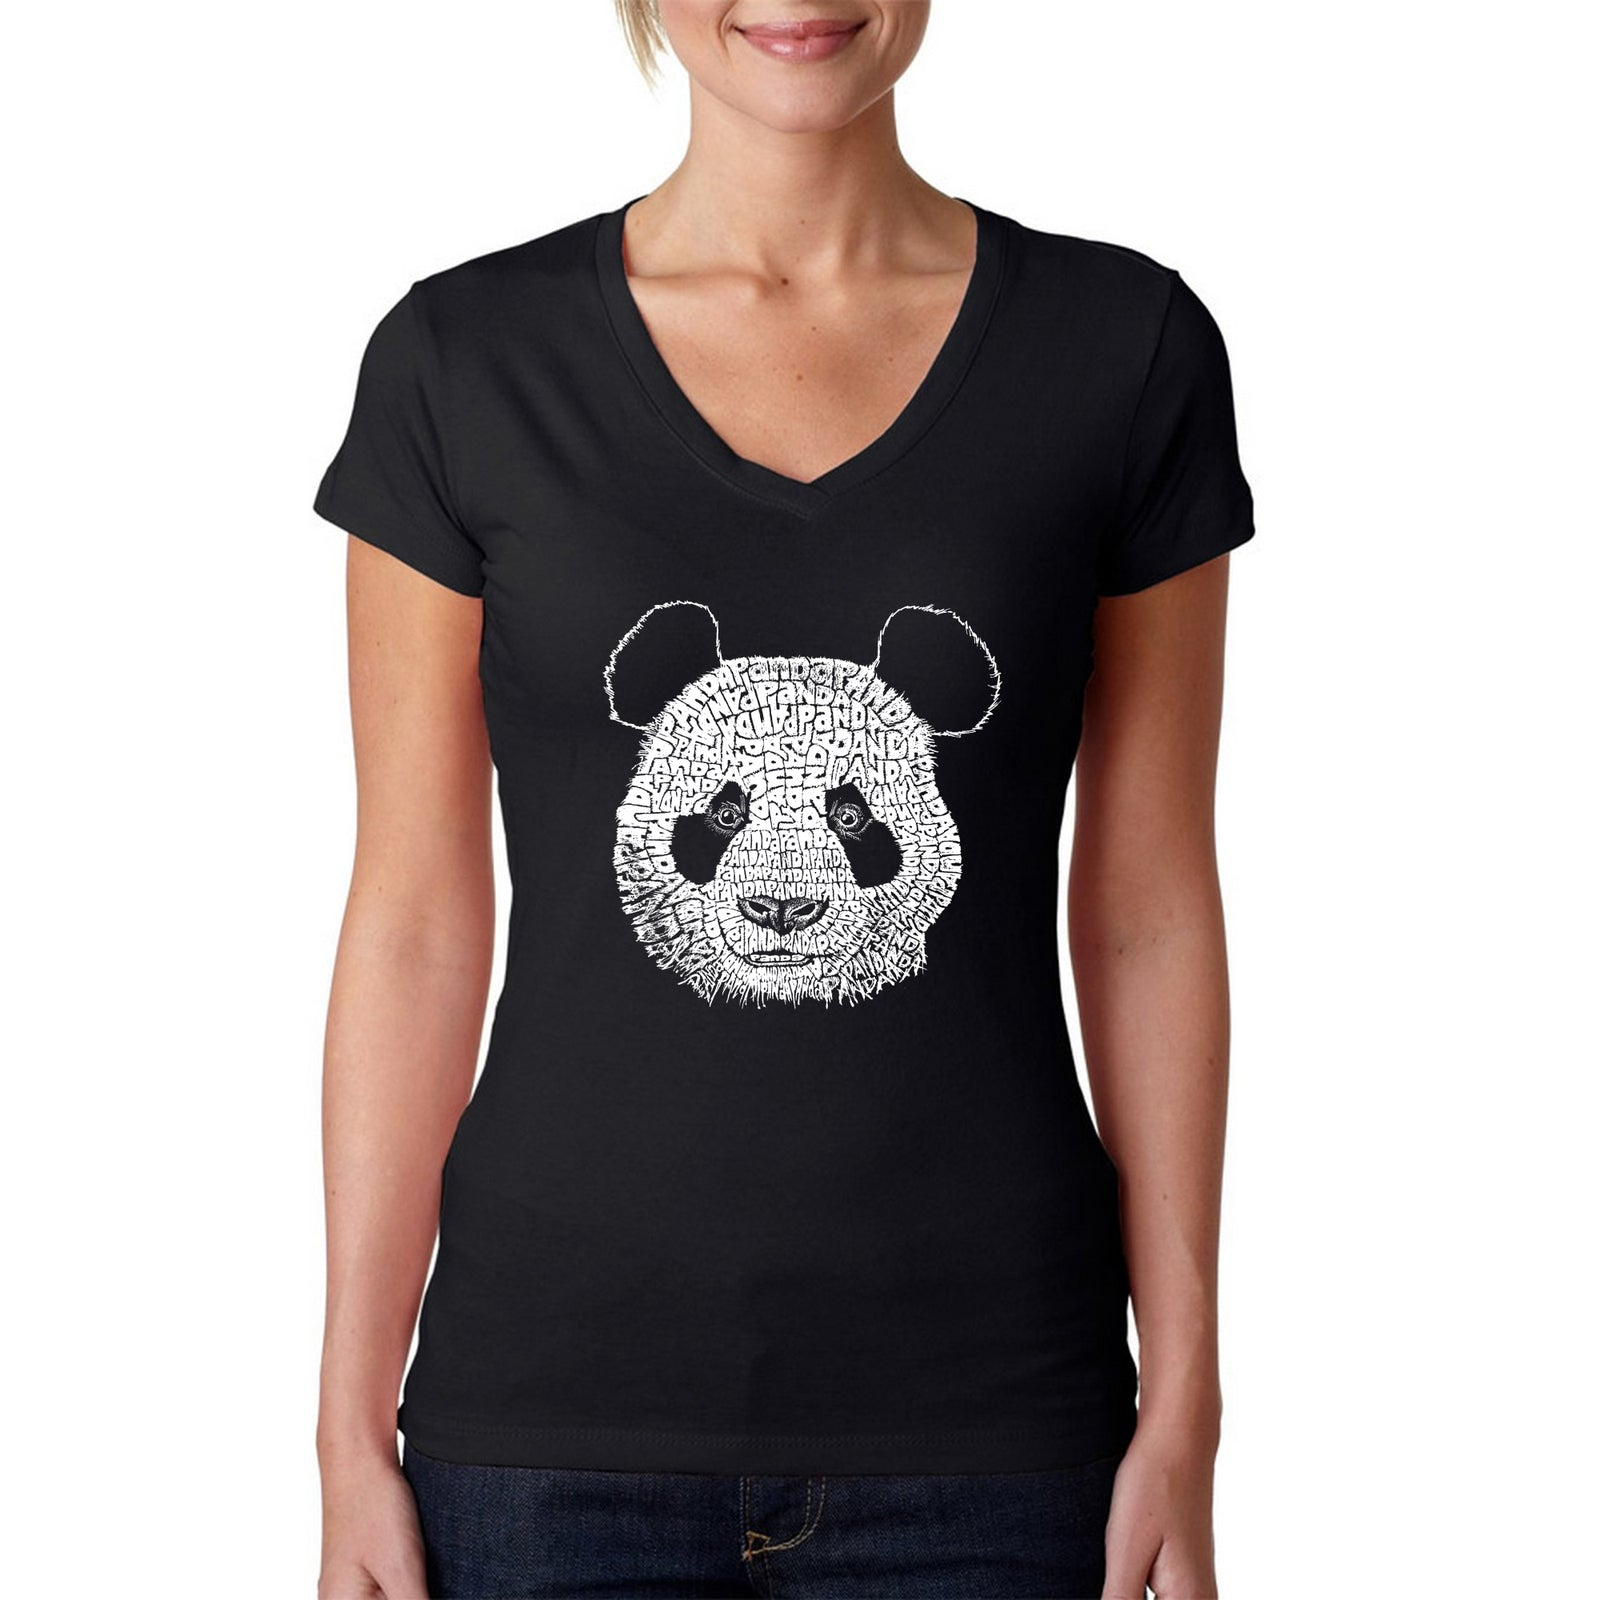 Women's Word Art V-Neck T-Shirt - Panda